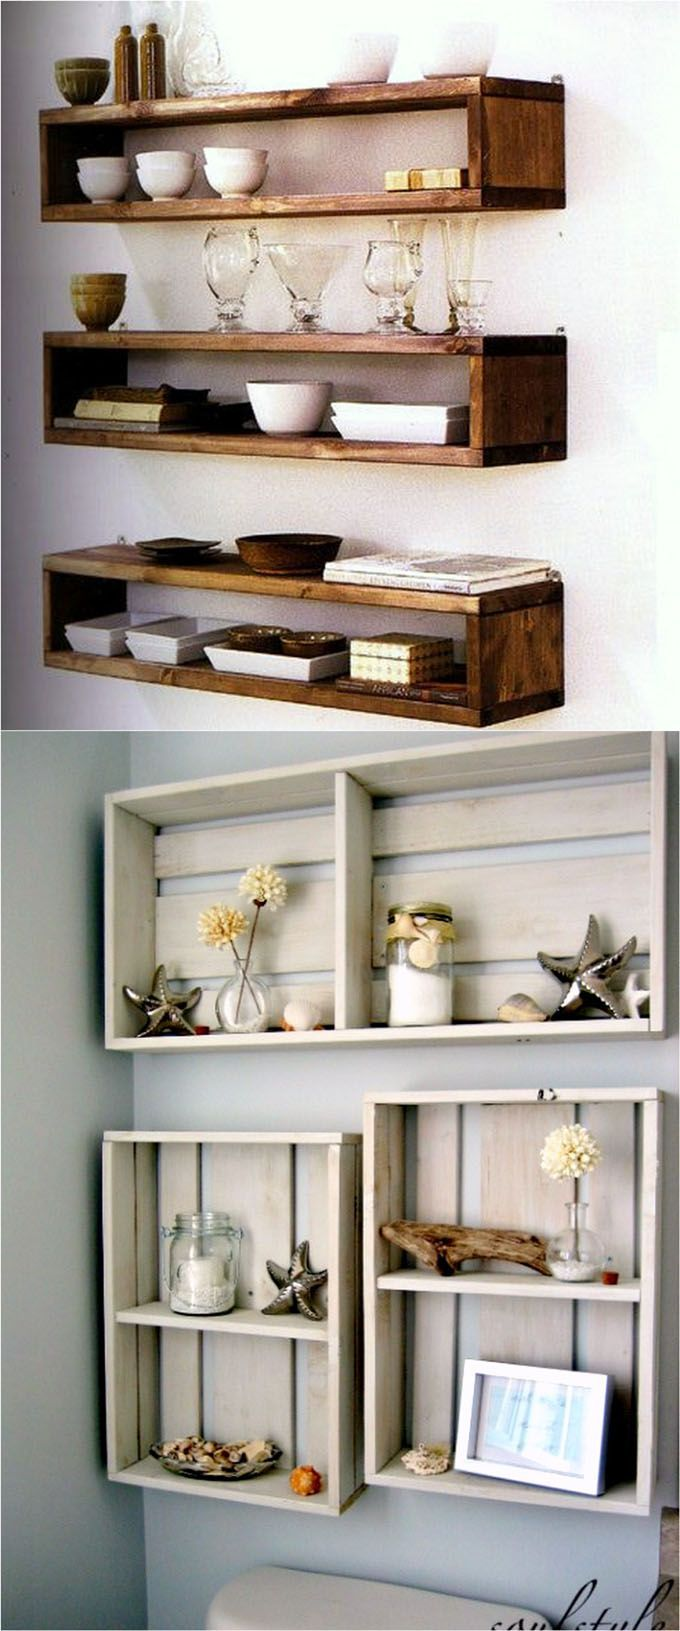 Easy Diy Wall Shelves - Home Design - Mannahatta us